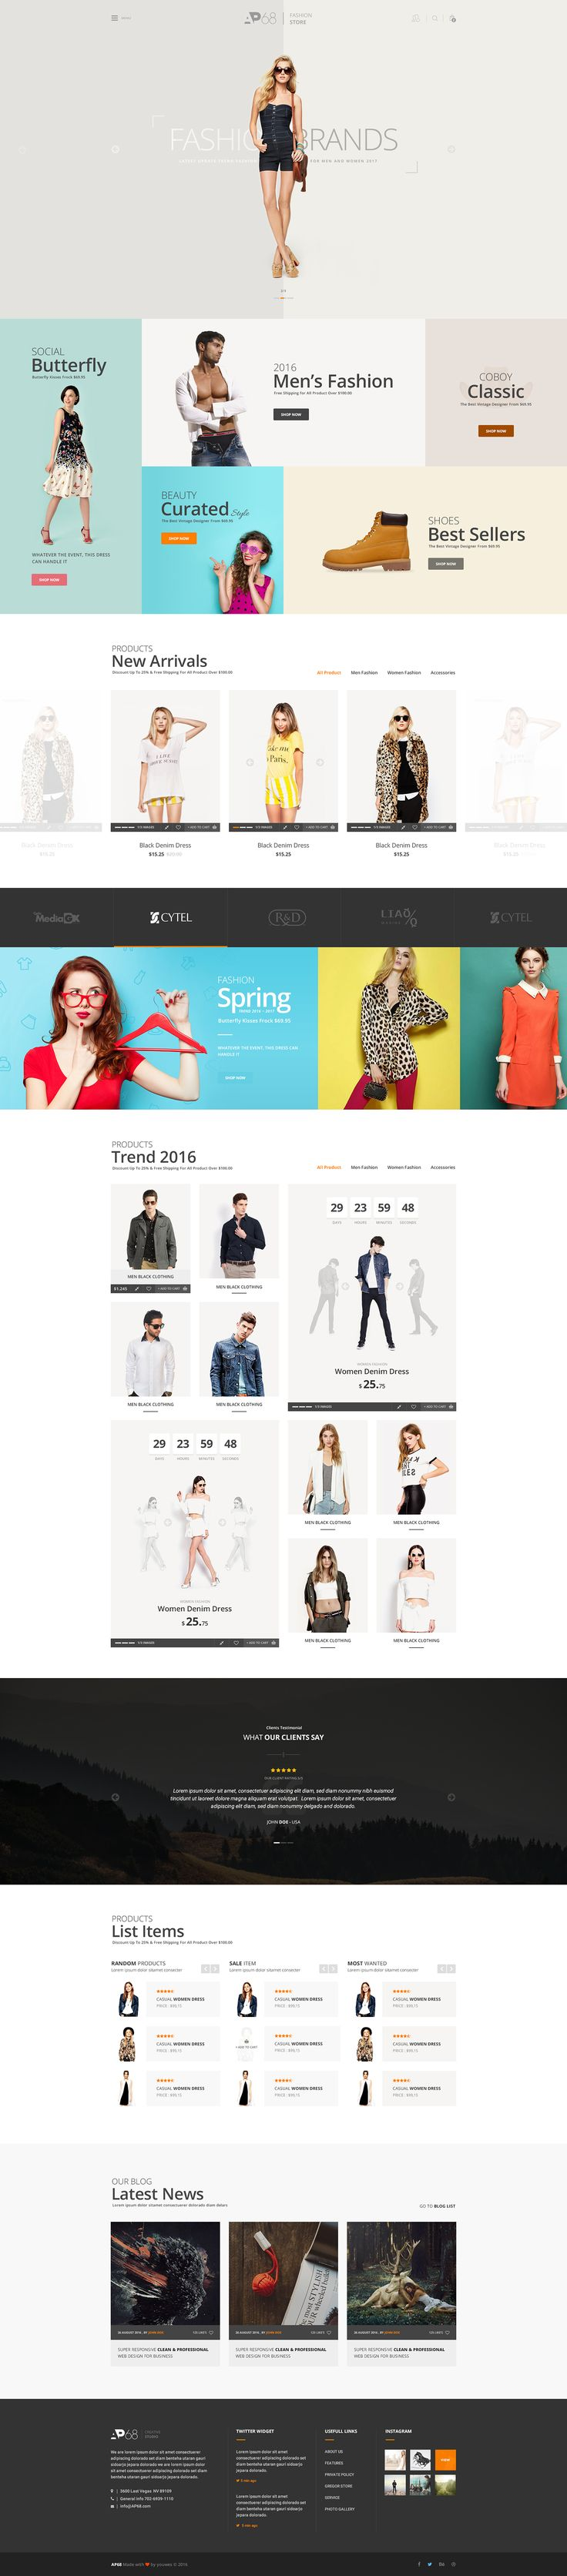 446 best web images on Pinterest | Web layout, Website designs and ...